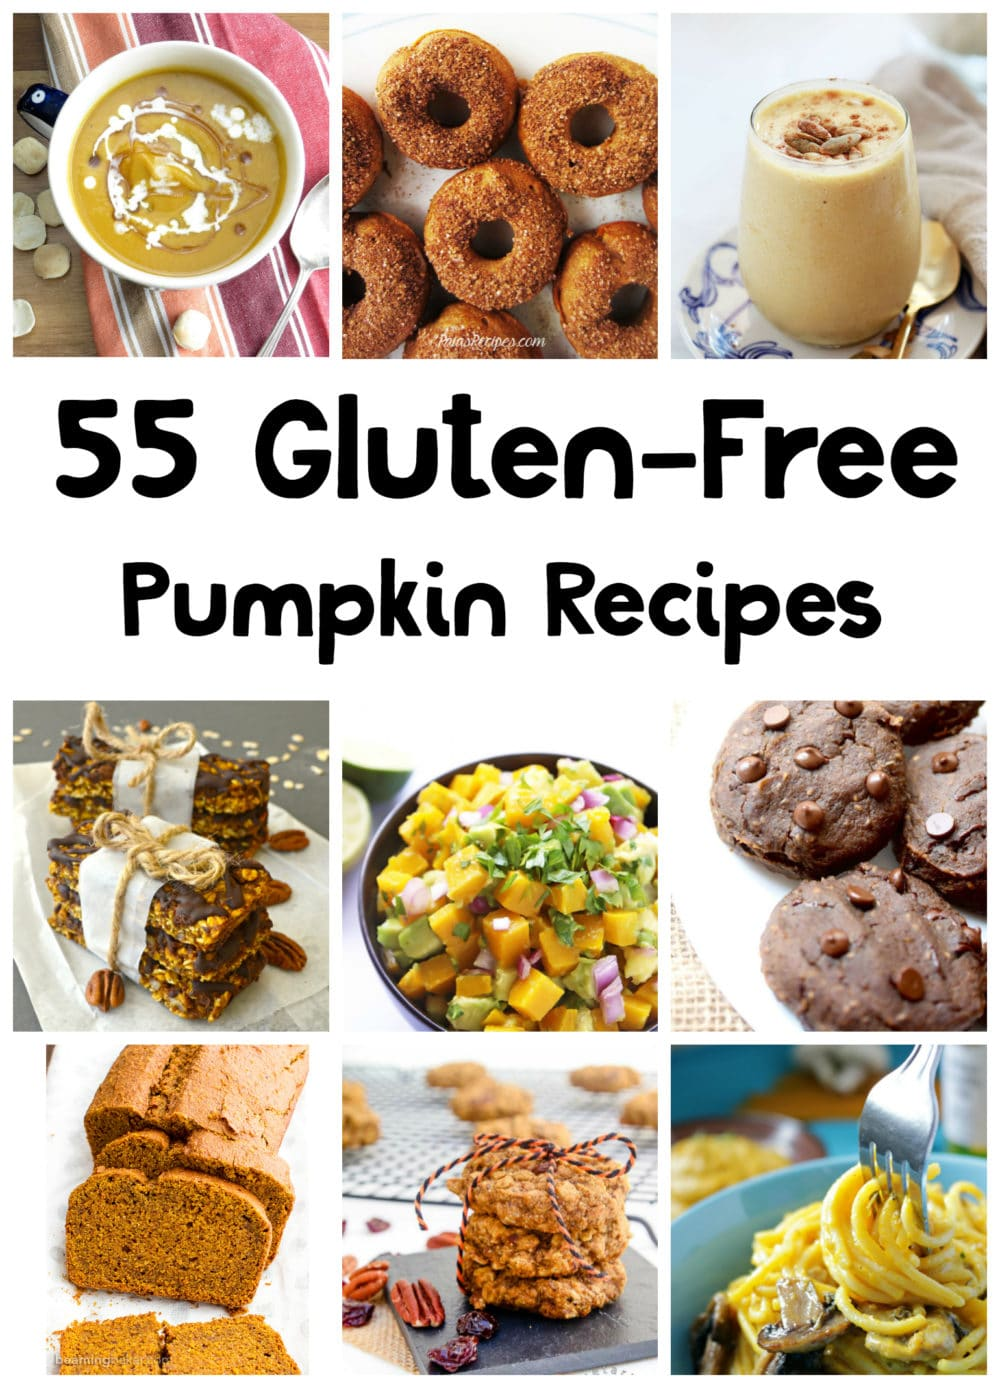 55 Gluten-Free and Dairy-Free Pumpkin Recipes (many of these are vegan and nut-free too!) - @thefitcookie #recipes #pumpkin #fall #glutenfree